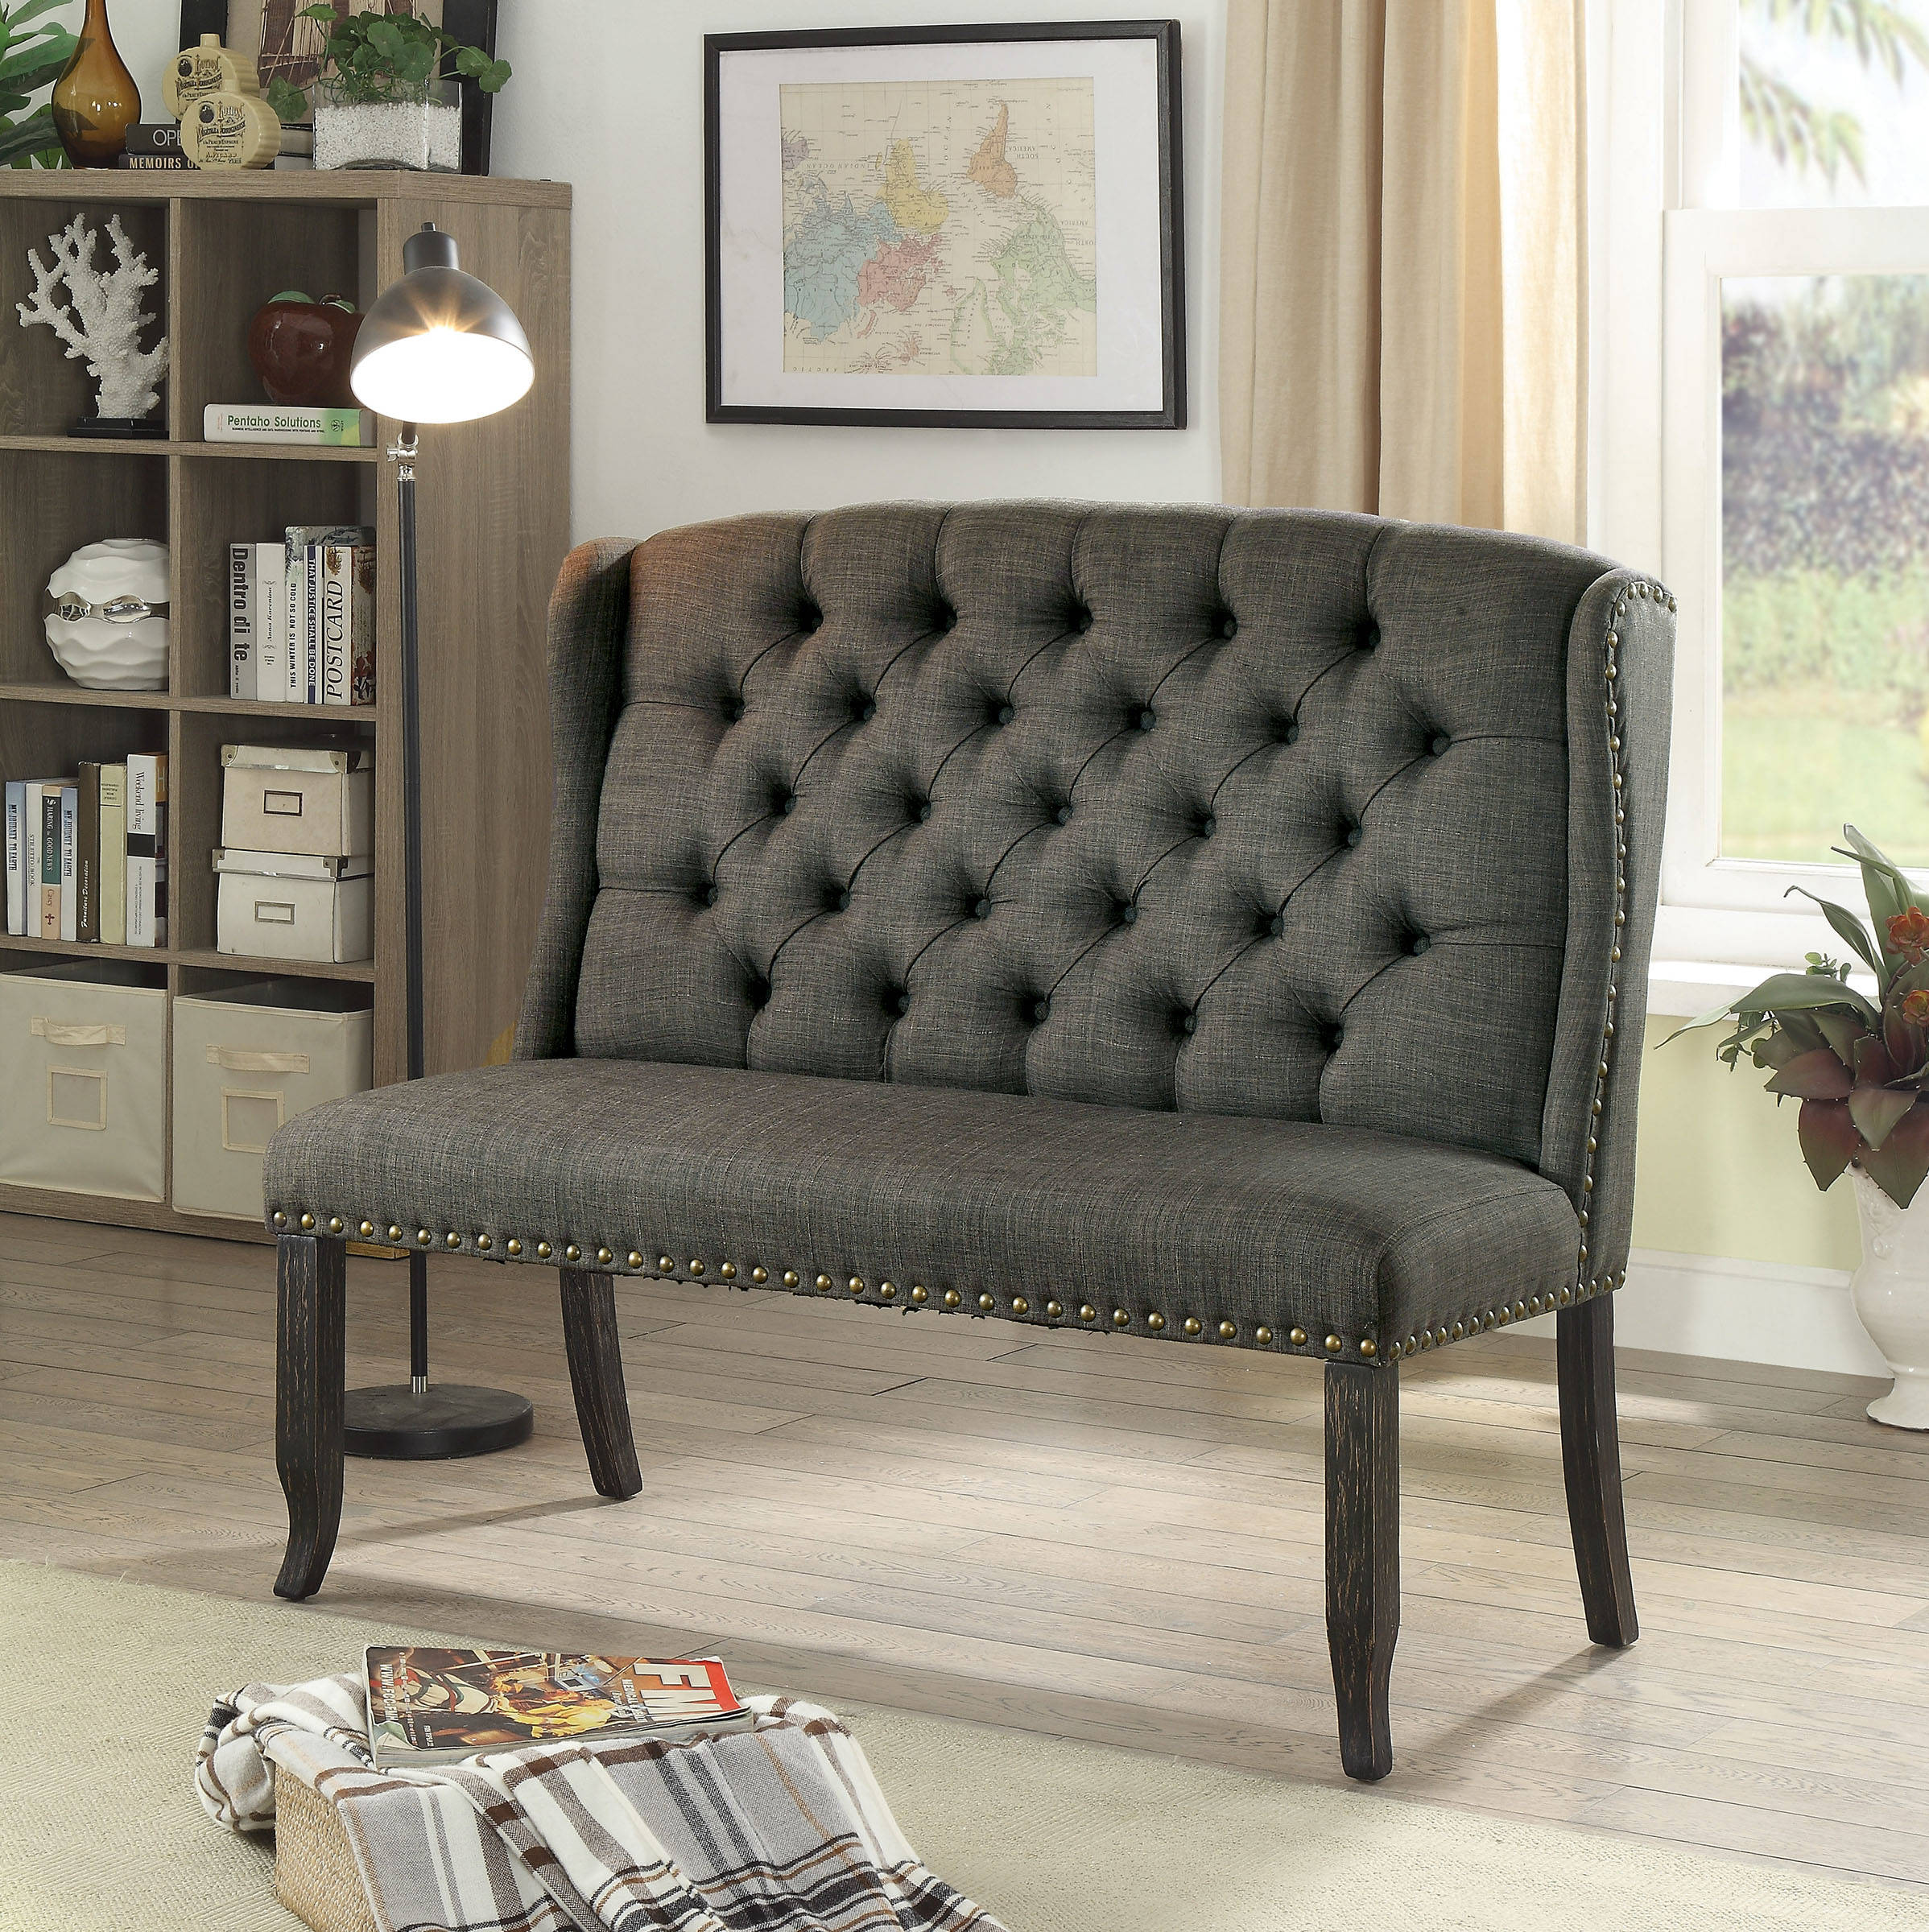 Cool Furniture Of America Sania Iii Gray 2 Seater Love Seat Bench Pabps2019 Chair Design Images Pabps2019Com